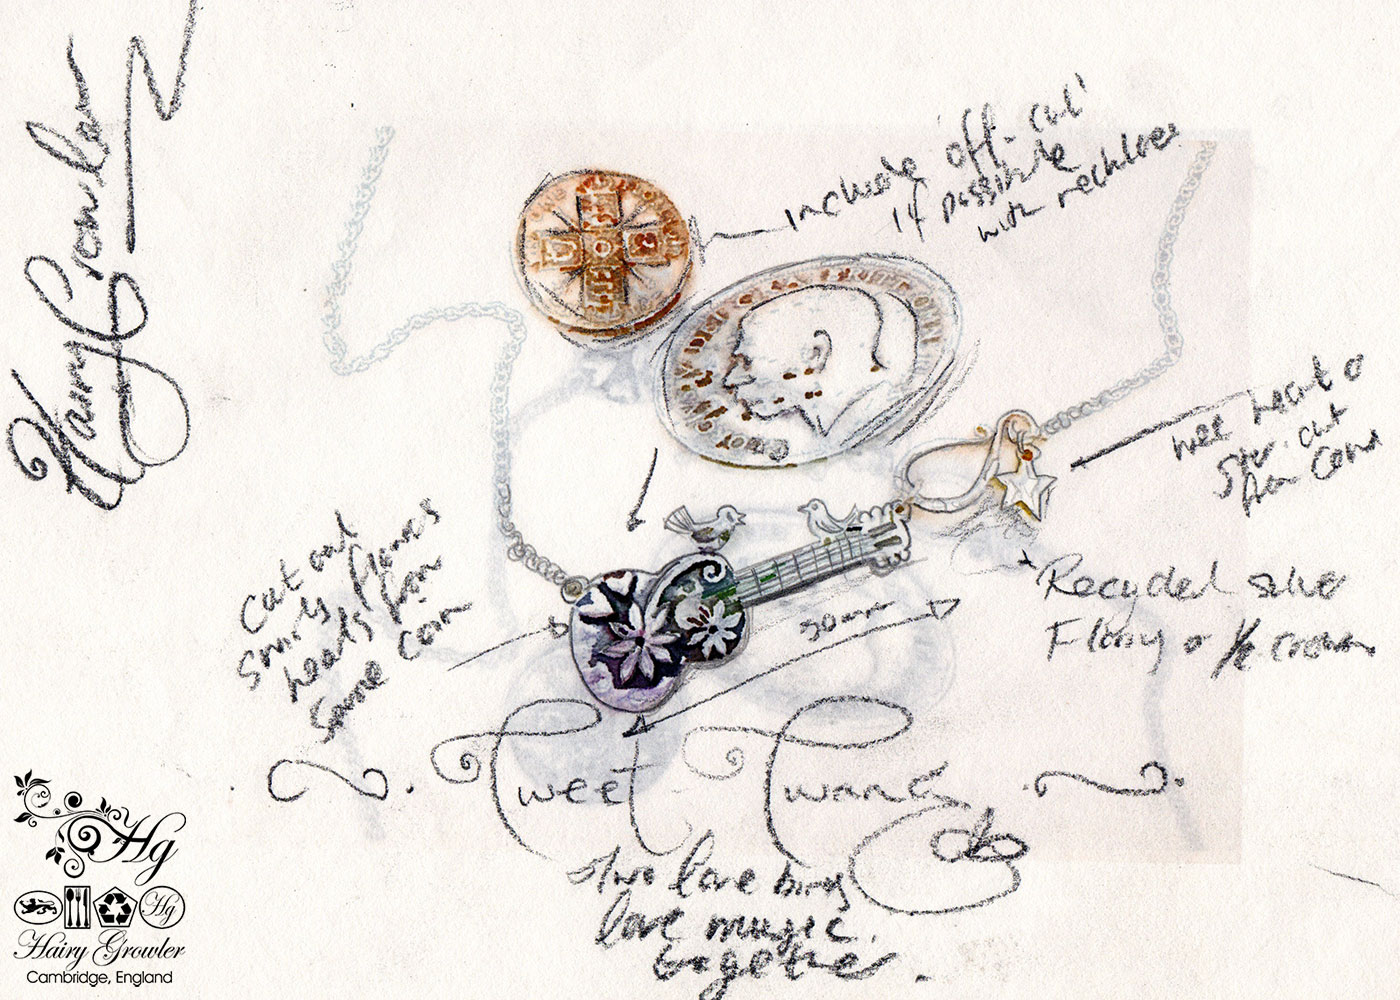 Handmade and upcycled sterling silver bird guitar necklace based on this initial concept sketch